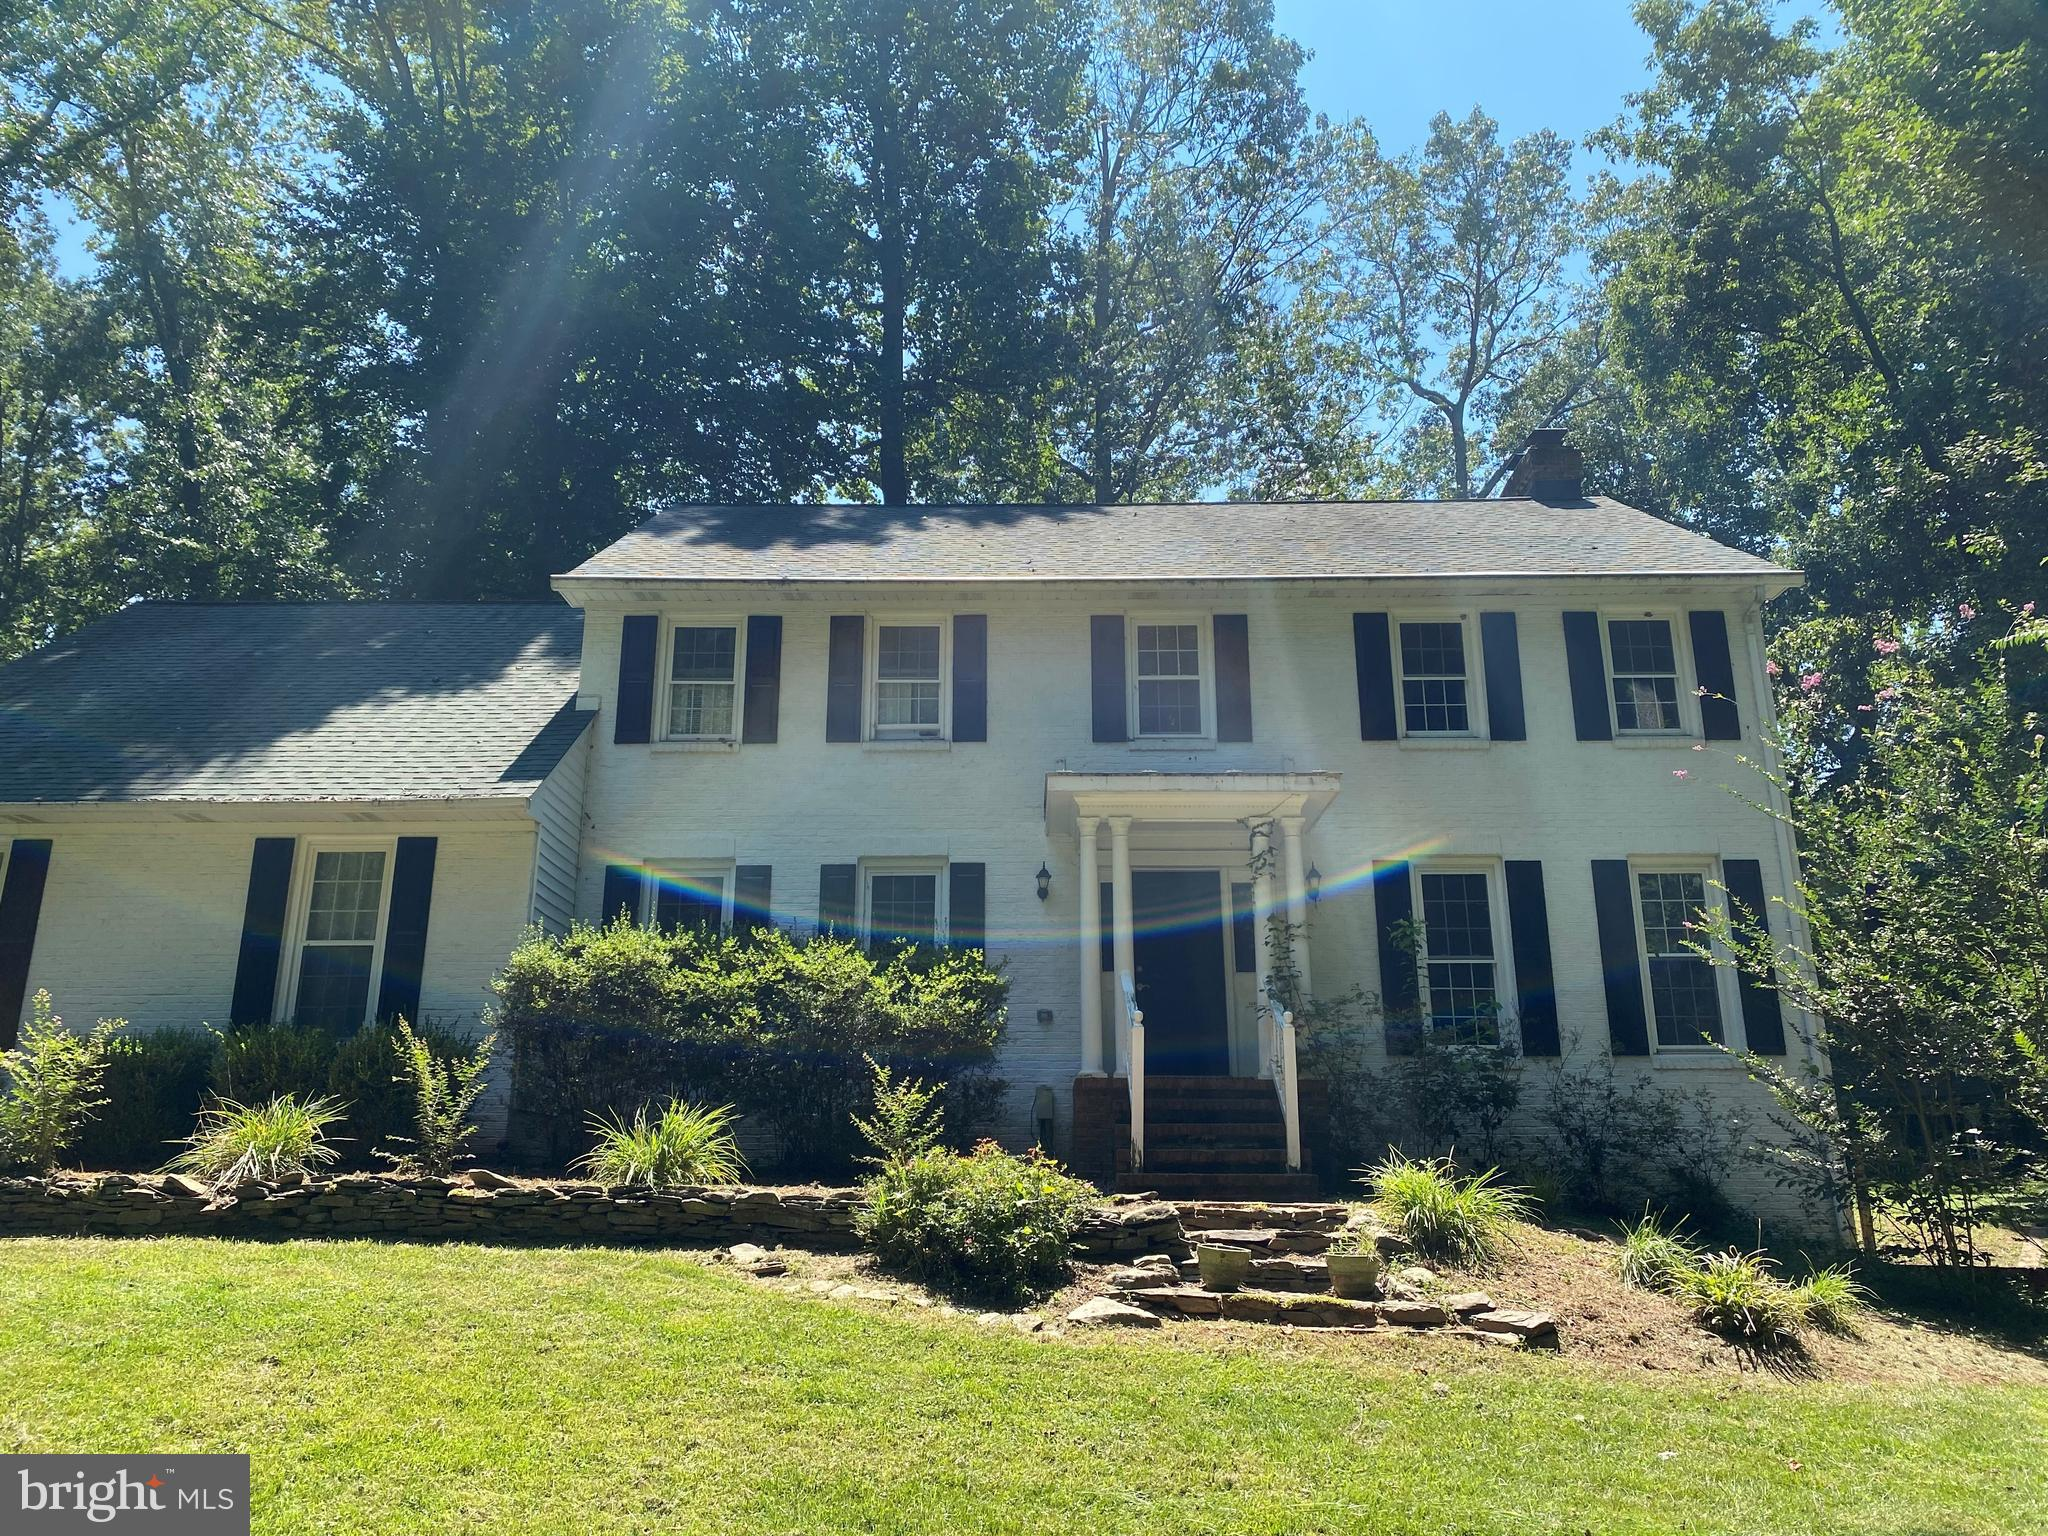 This gorgeous 4 bedroom 3 bath home is nestled on a large private lot in Warrenton, Virginia.  Highly sought after schools, mature trees, gardens, and outdoor spaces galore. The right person can easily turn this lovely home into their own personal palace on the hill!  Come see before it is gone! This stately, brick home has everything, even a Potting Shed with electric for those with a green thumb.